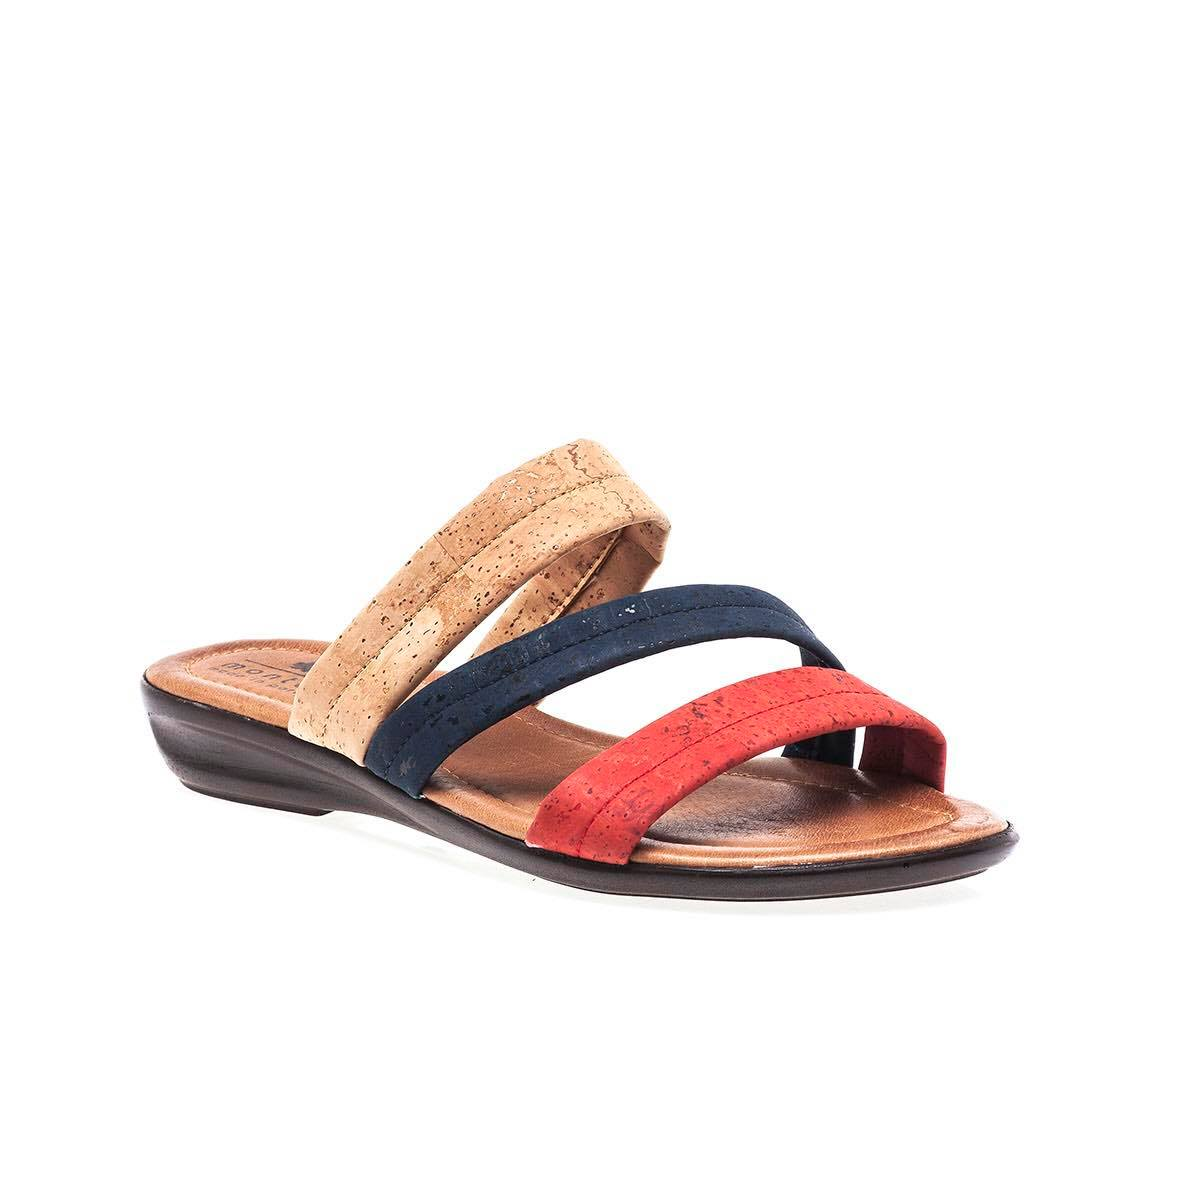 Strap Tommy Cork Sandals